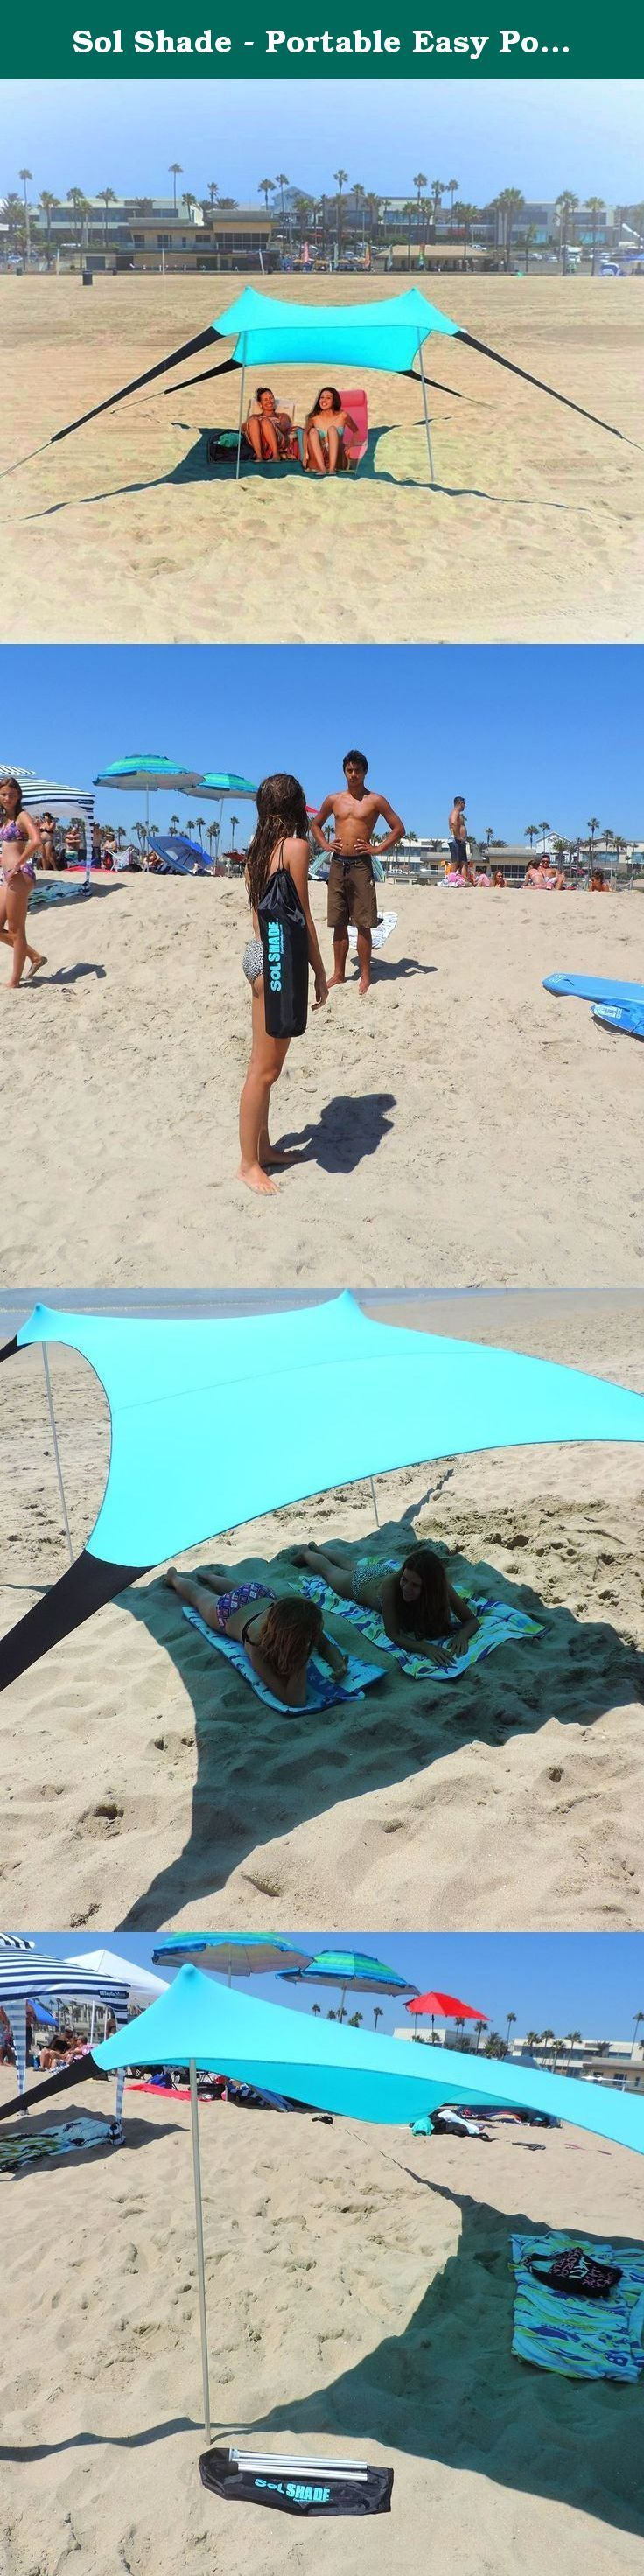 Sol Shade - Portable Easy Pop Up Beach Stretch Fabric Sun Shade Tent Canopy - Sand Anchors - Excellent Beach Tent. EasyGo Products Sol ShadeTM is a great item for anywhere you may need some shelter from the sun! Easy to take along in convenient backpack strap style carrying bag. Comes with two aluminum collapsible mounting poles that make set up a breeze! Just lay out your Sol ShadeTM flat on the ground. Fill sand bags with sand or insert any heavy item available. Stretch all bags as far...